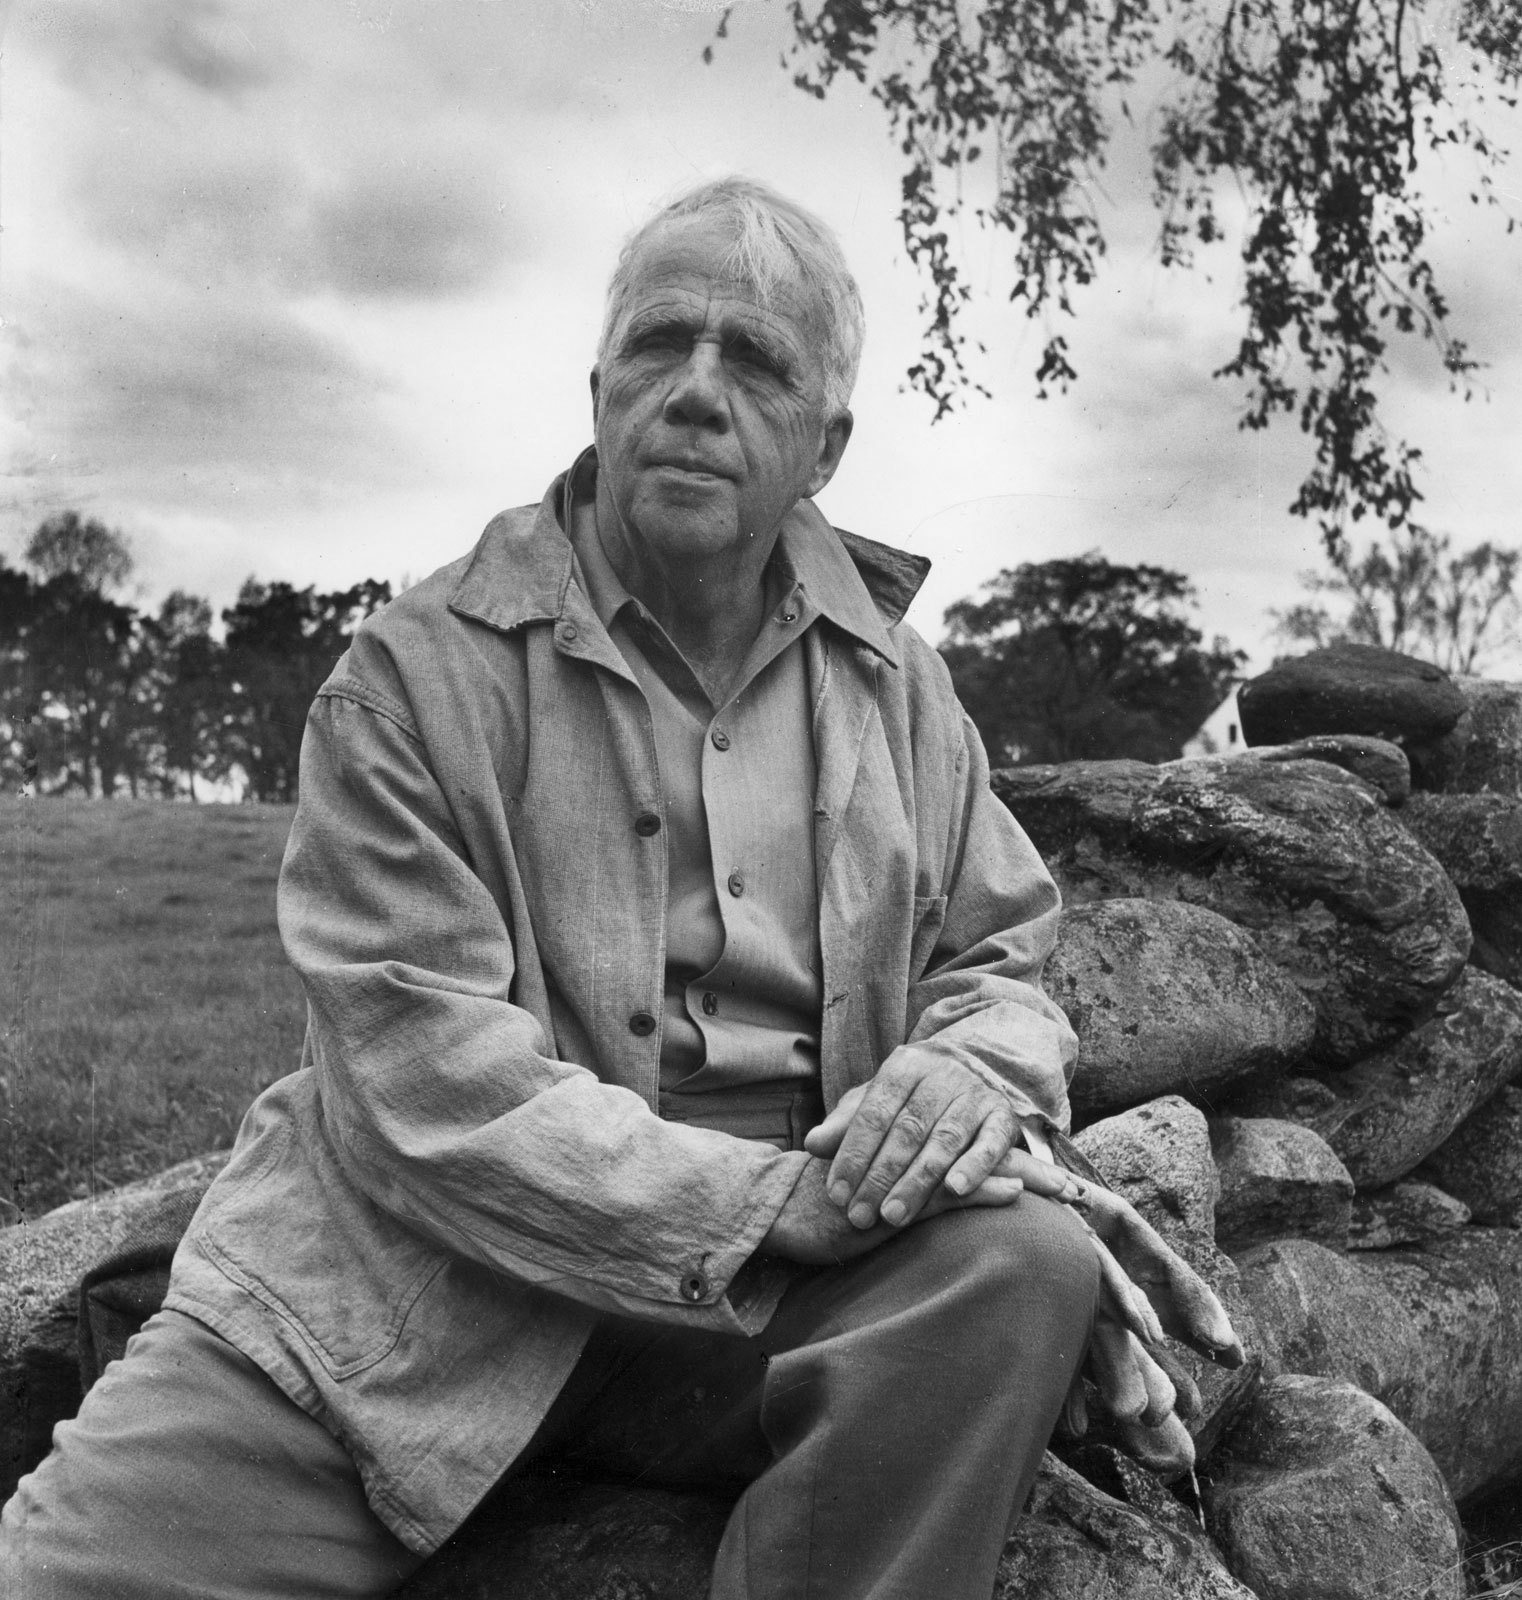 A comparison of Robert Frost's life and his writings